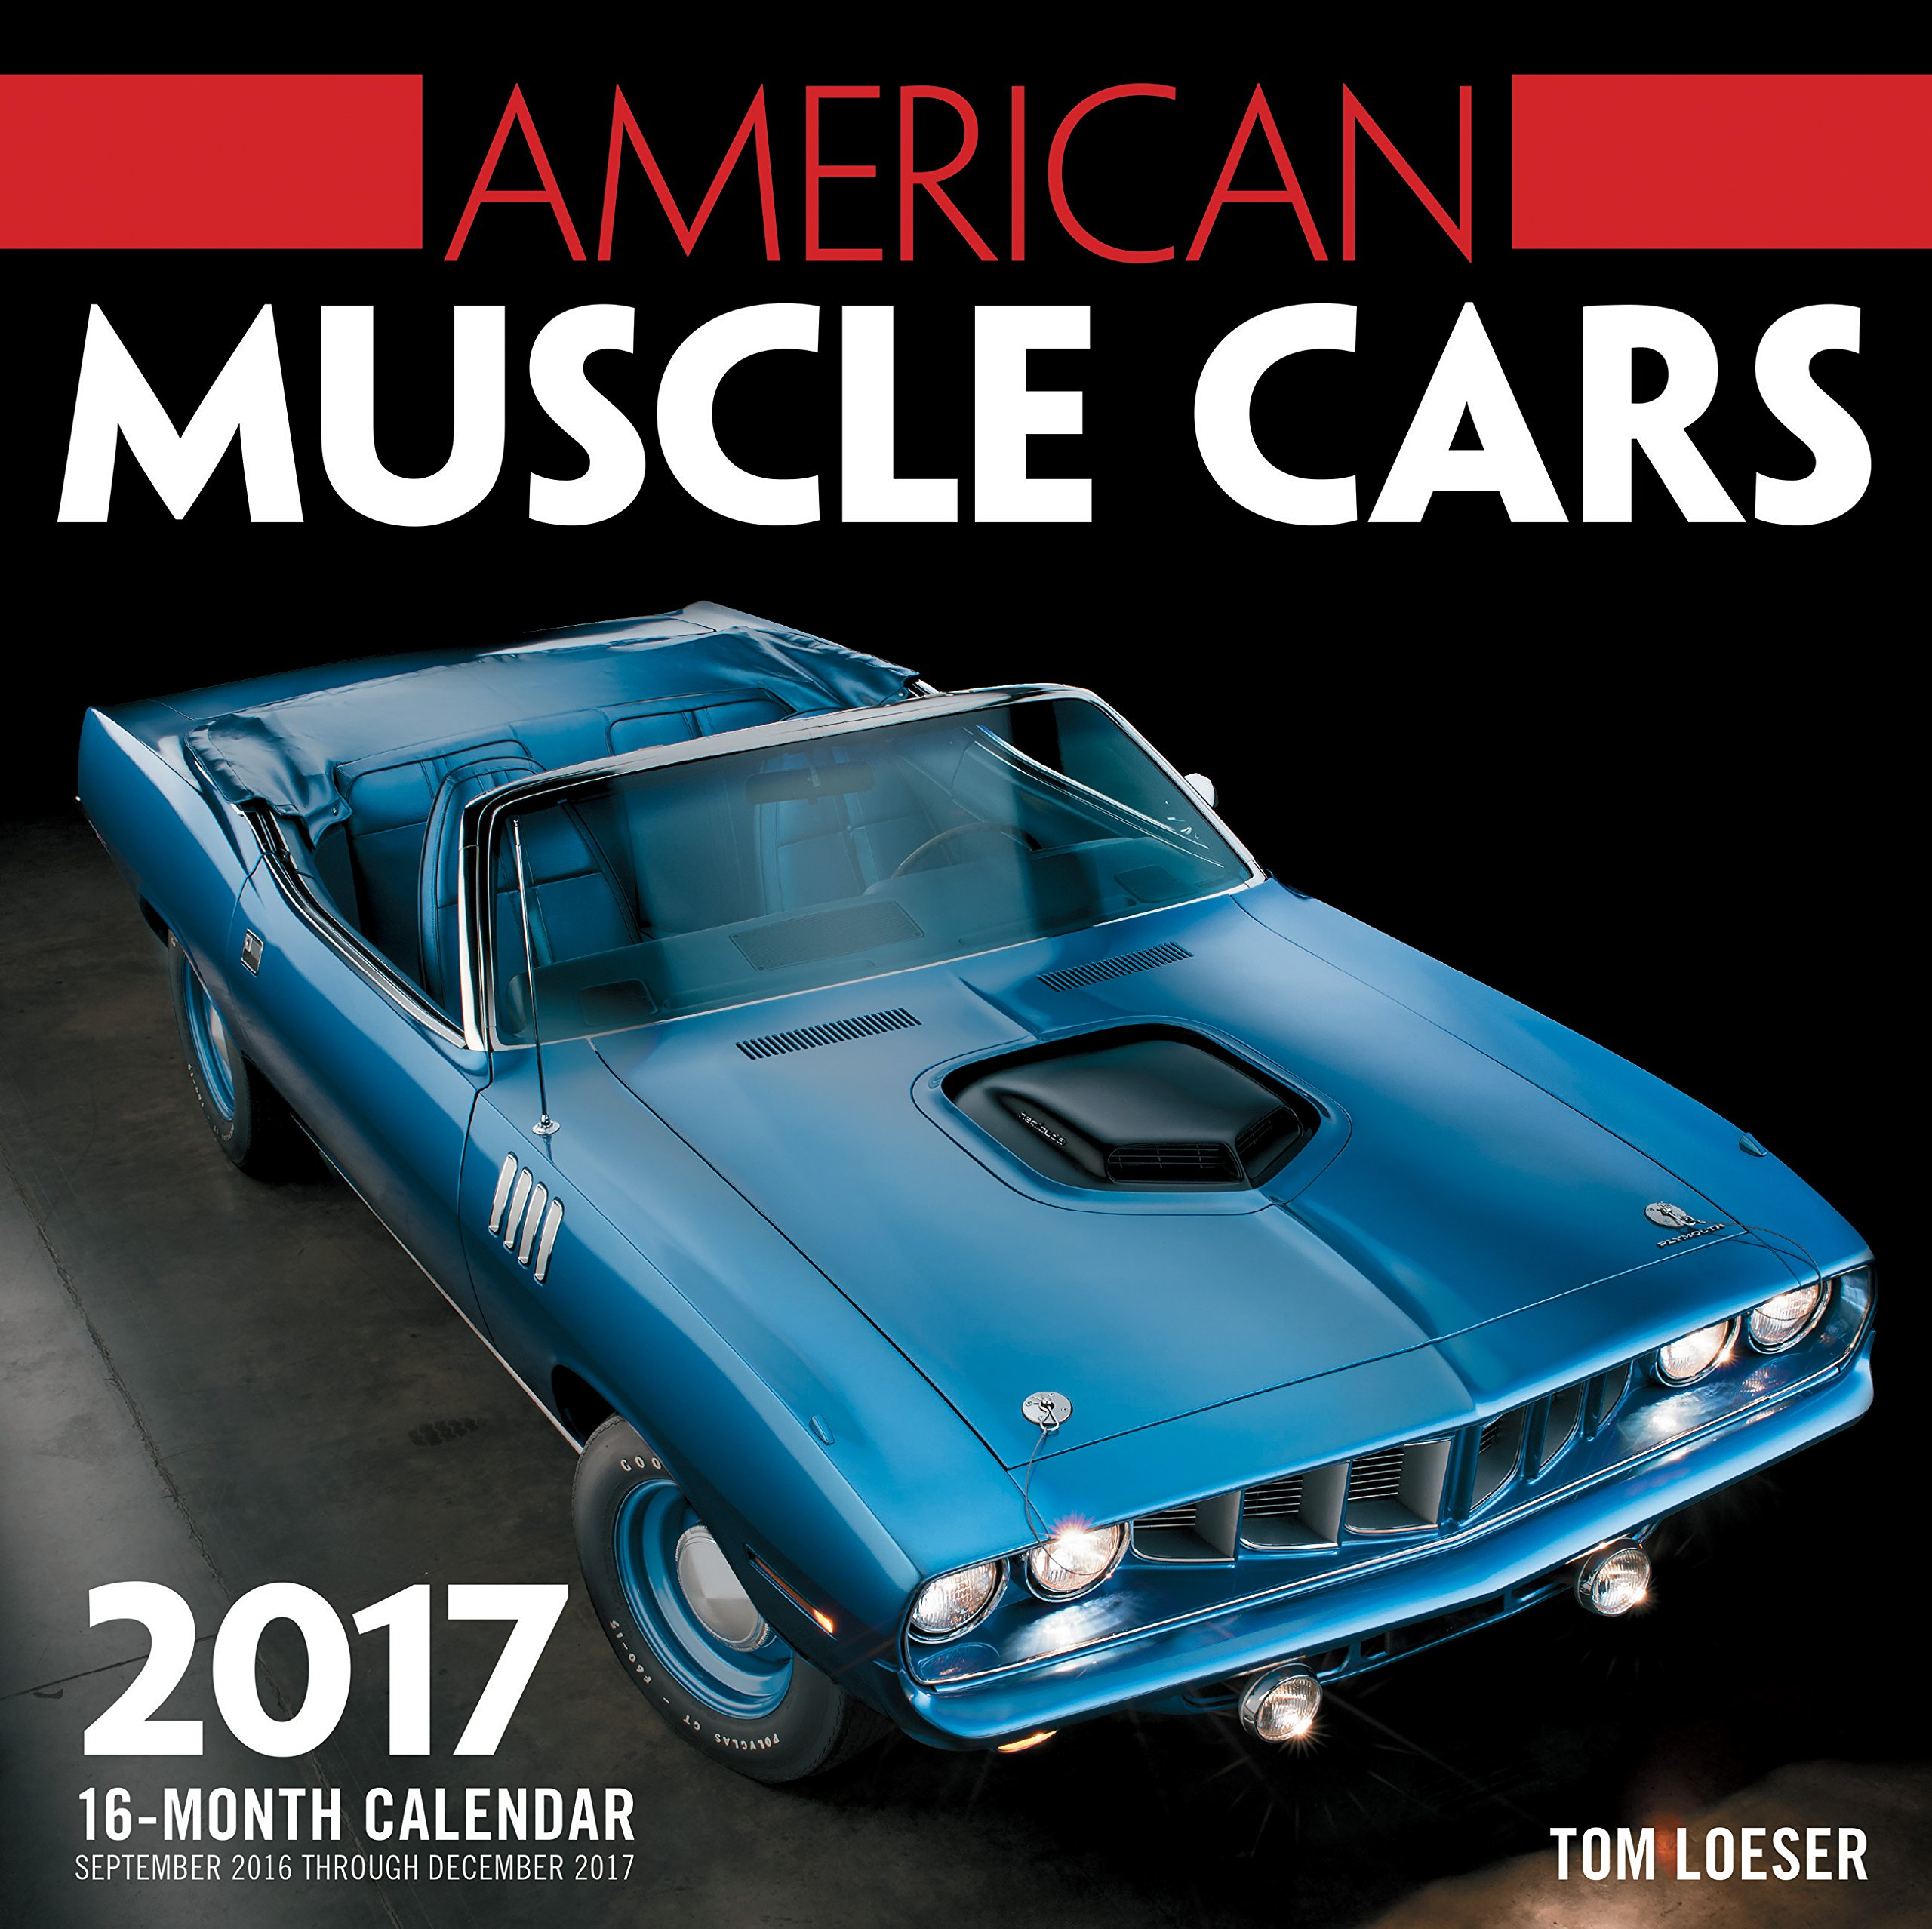 American muscle cars 2017 16 month calendar september 2016 through december 2017 tom loeser ron kimball stock photography 9780760350607 amazon com